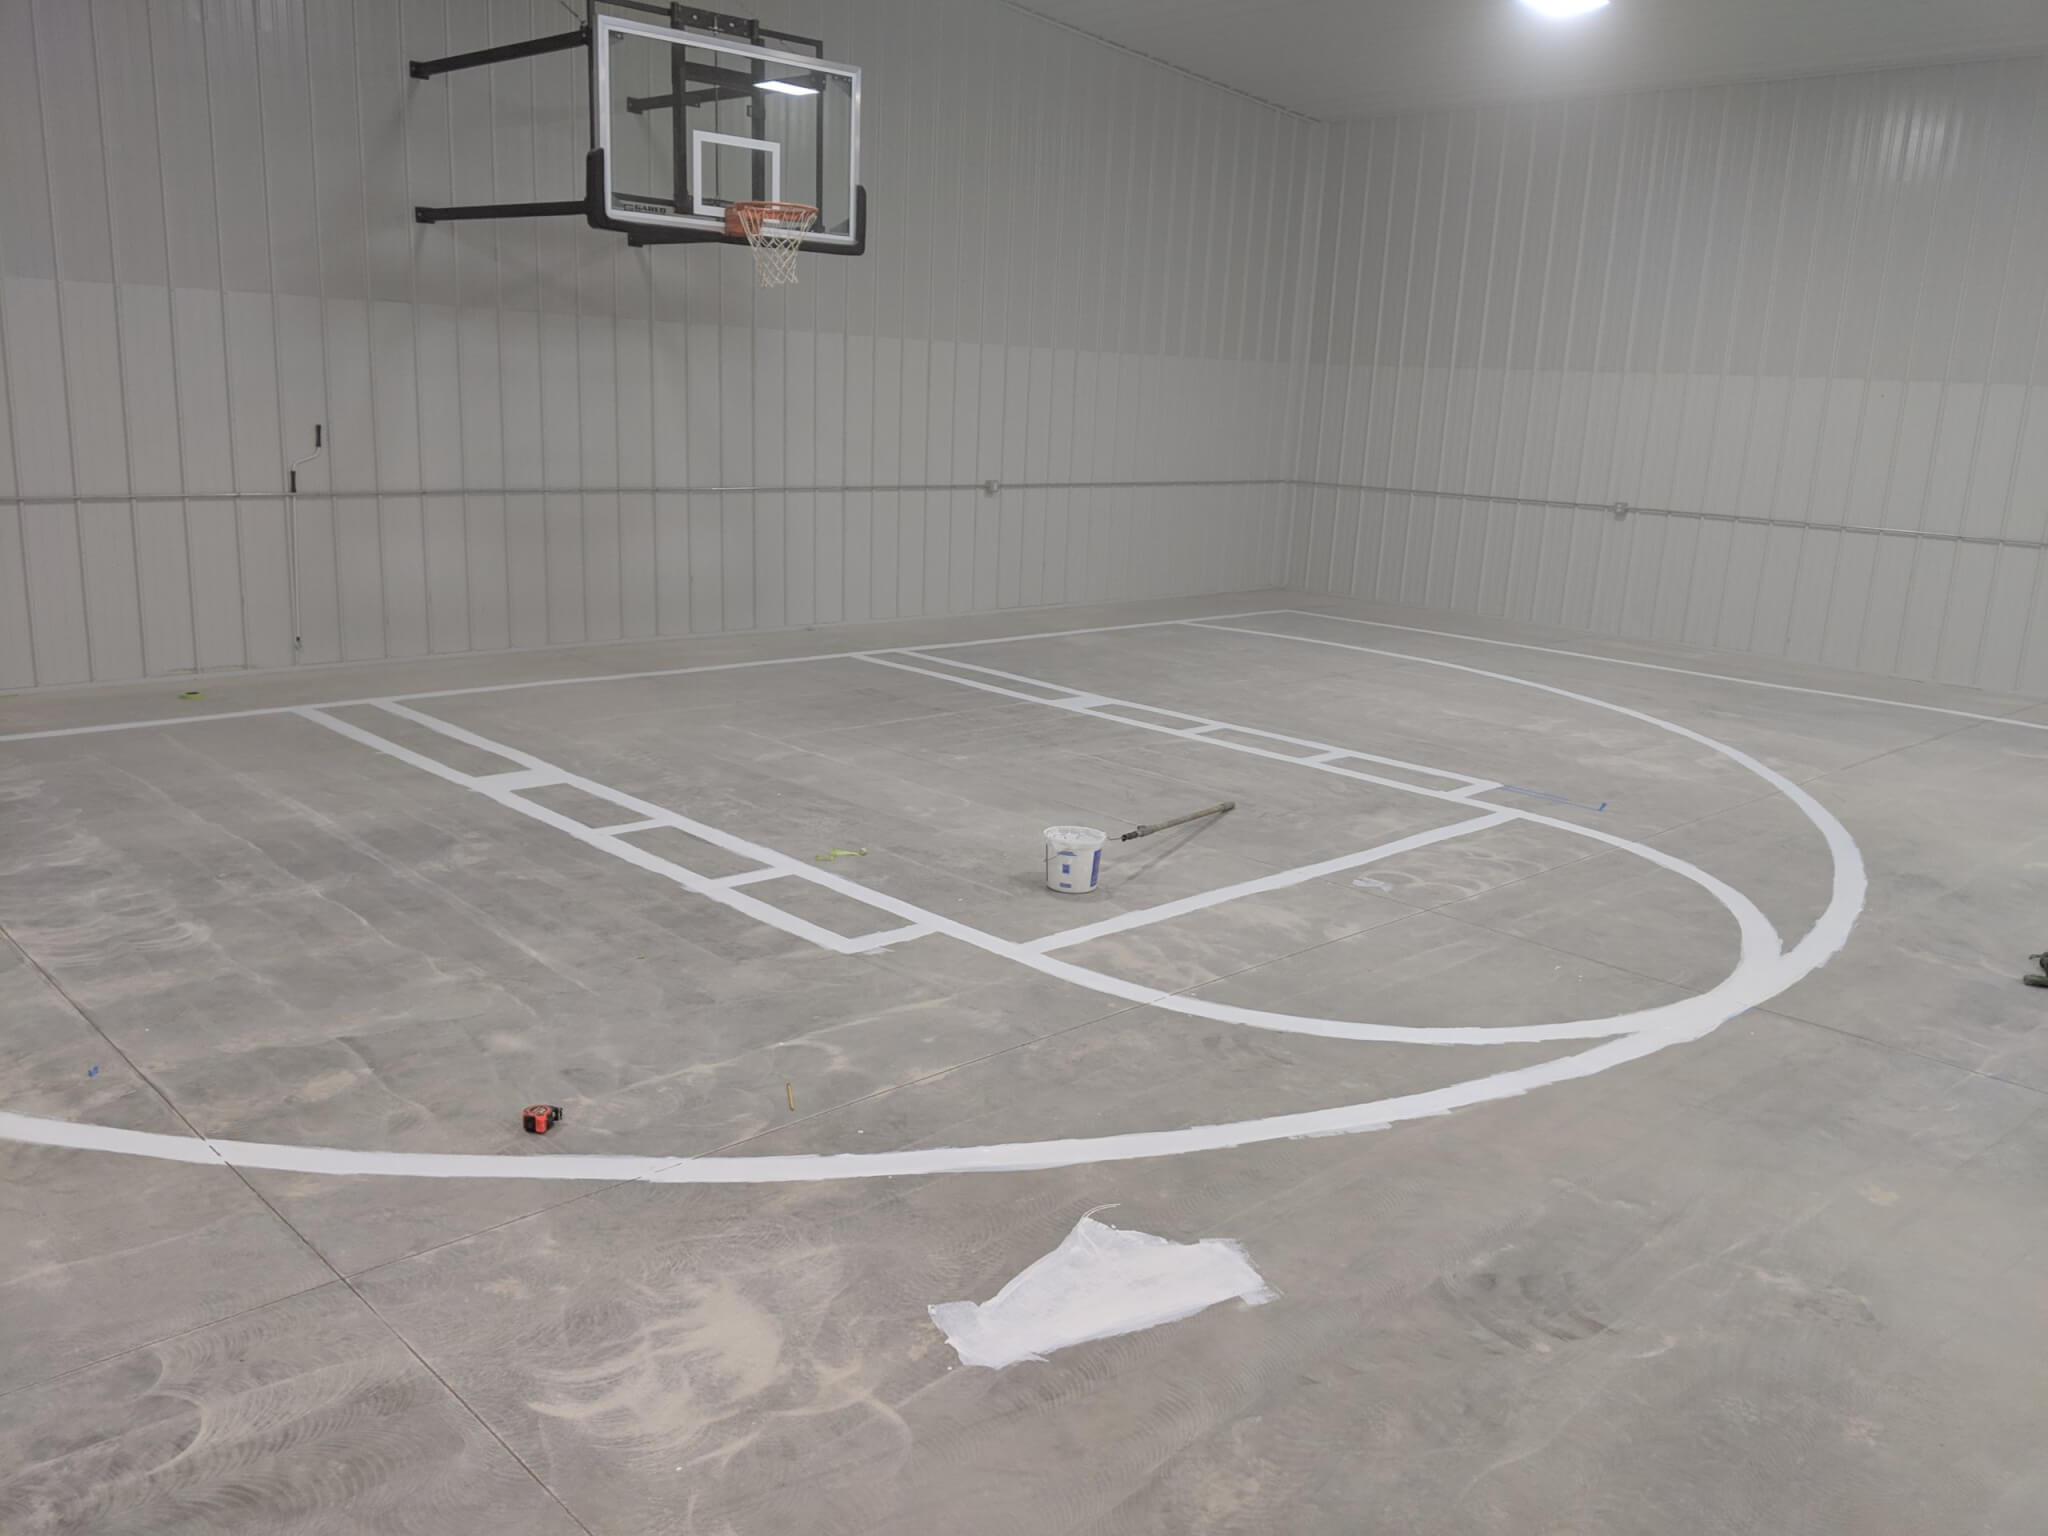 Laying out Basketball Court lines before Epoxy Flooring install